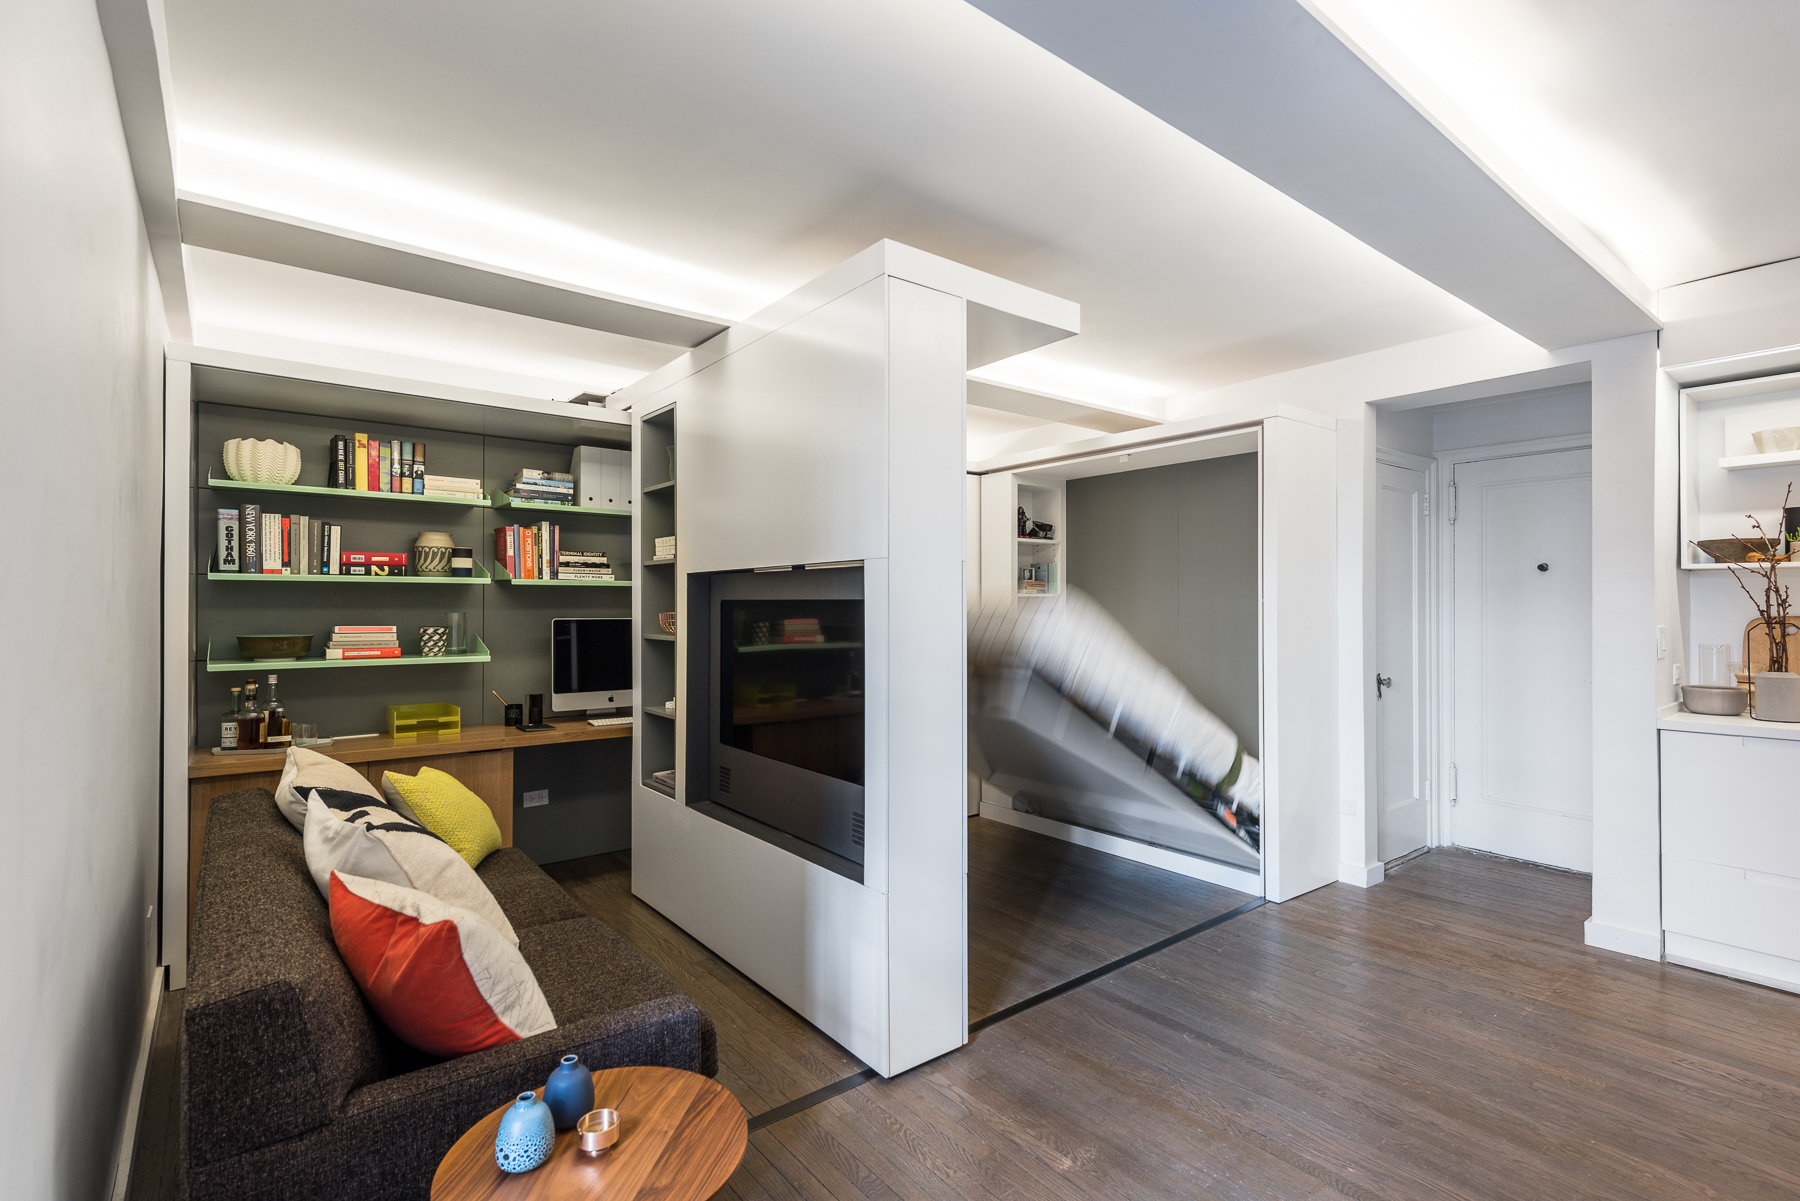 390 Square Foot Micro Apartment With Multifunctional